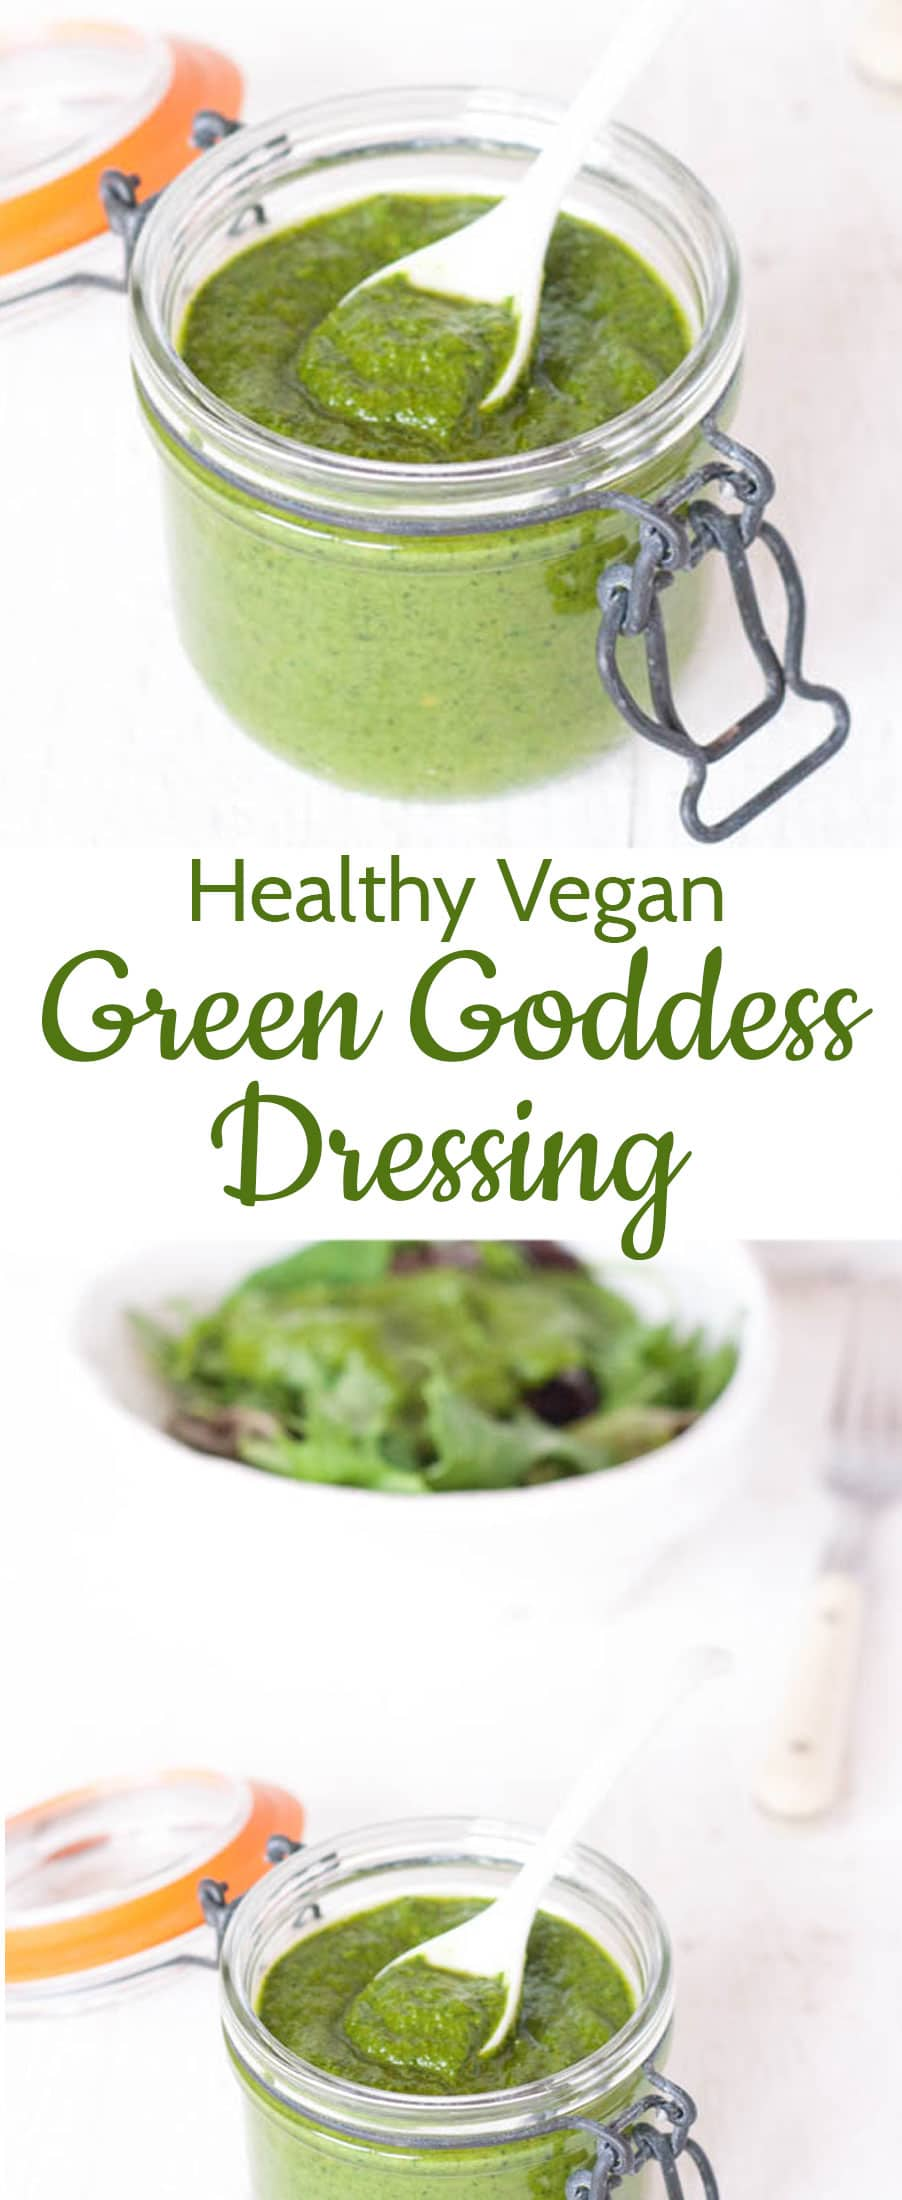 An intensely fresh, zingy vegan dressing made from left over fresh herbs. Endlessly adaptable and delicious.